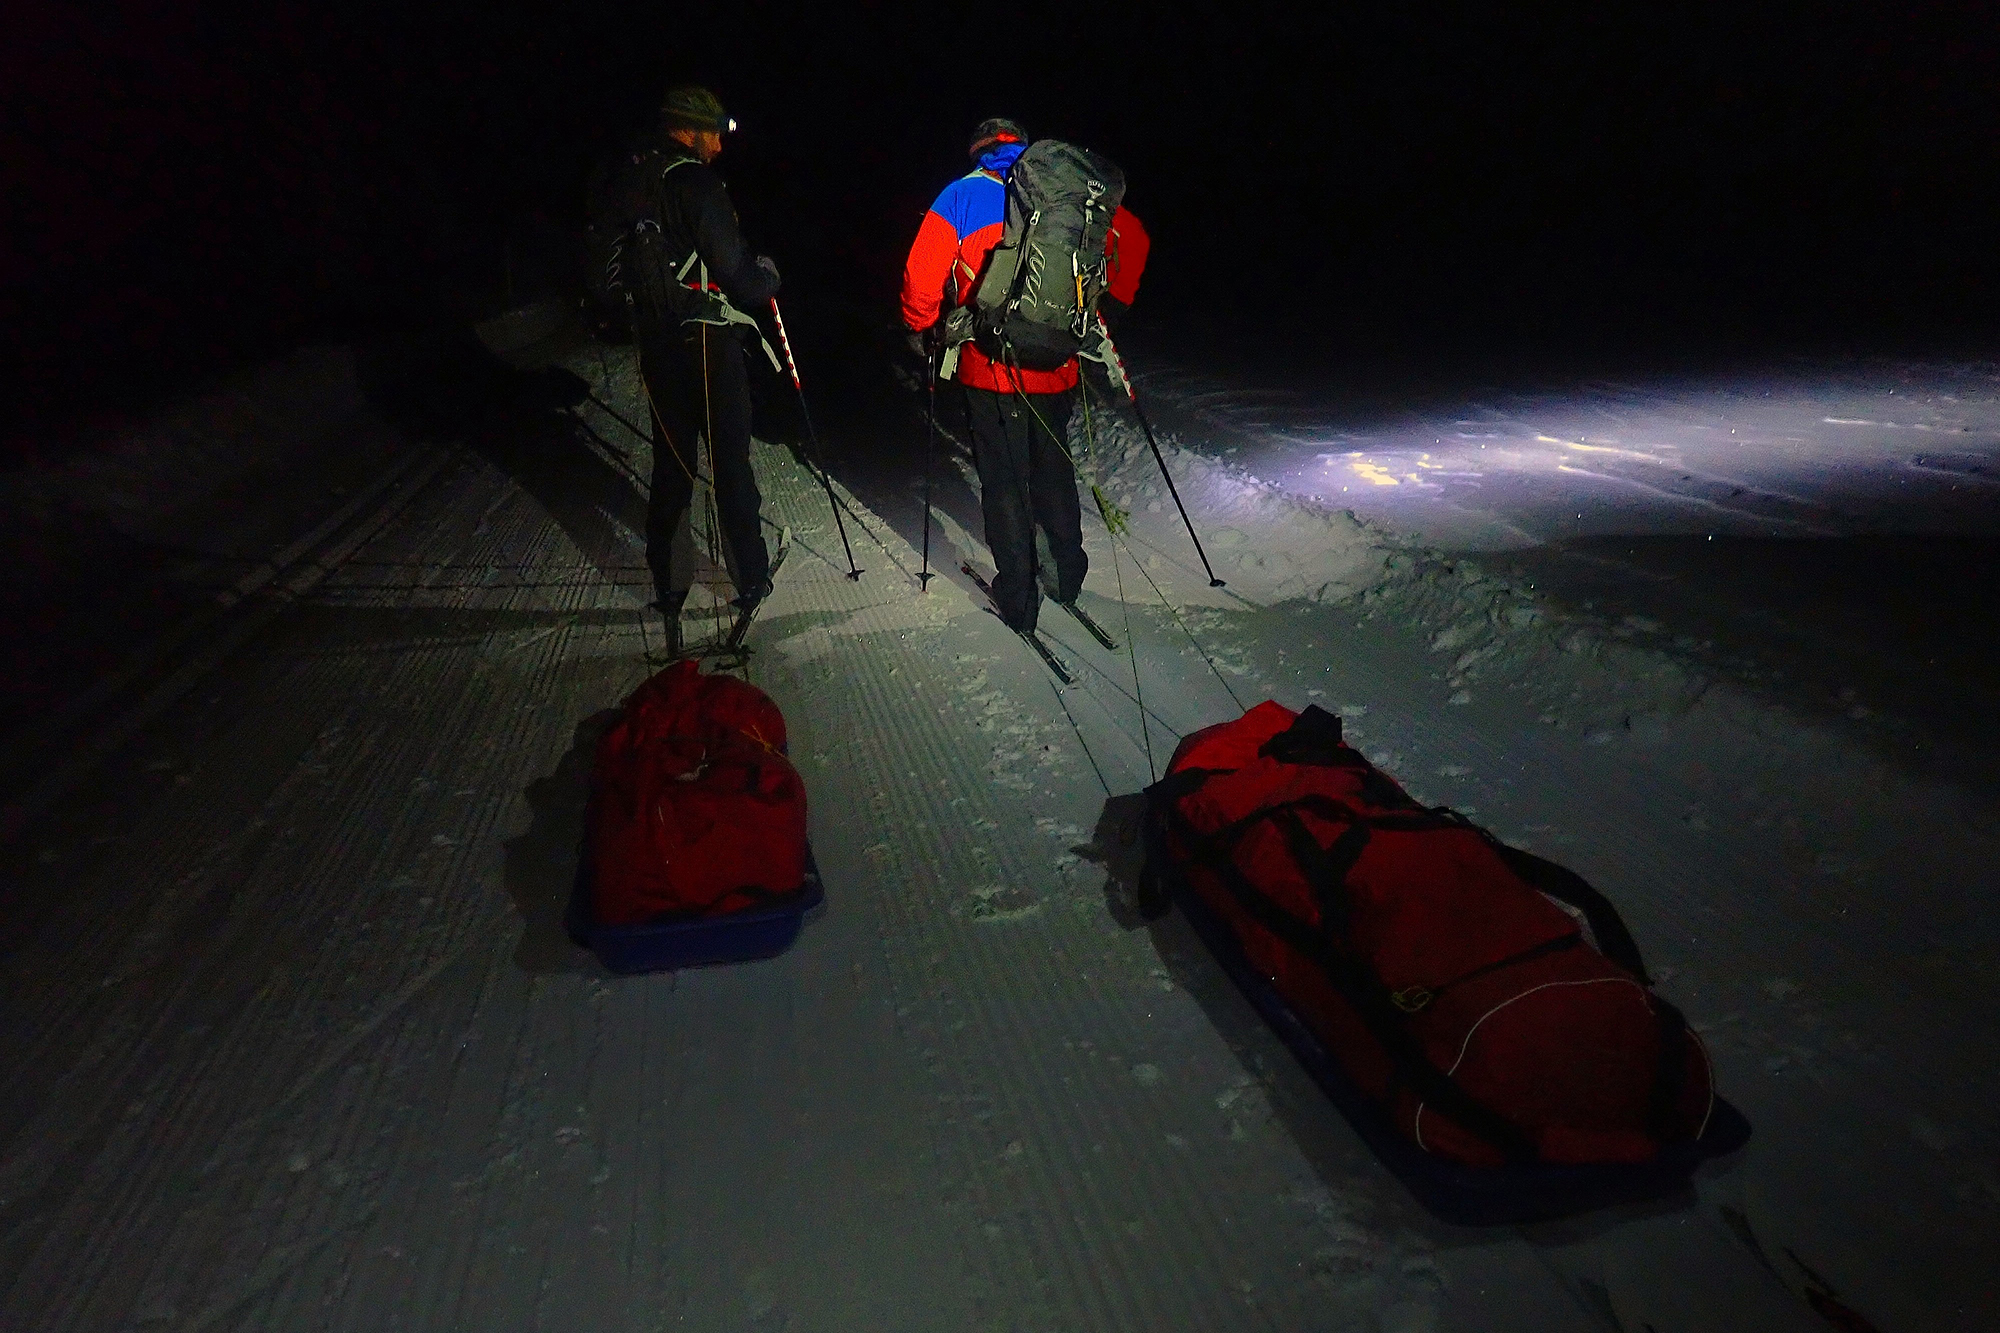 Night polk training in Norway